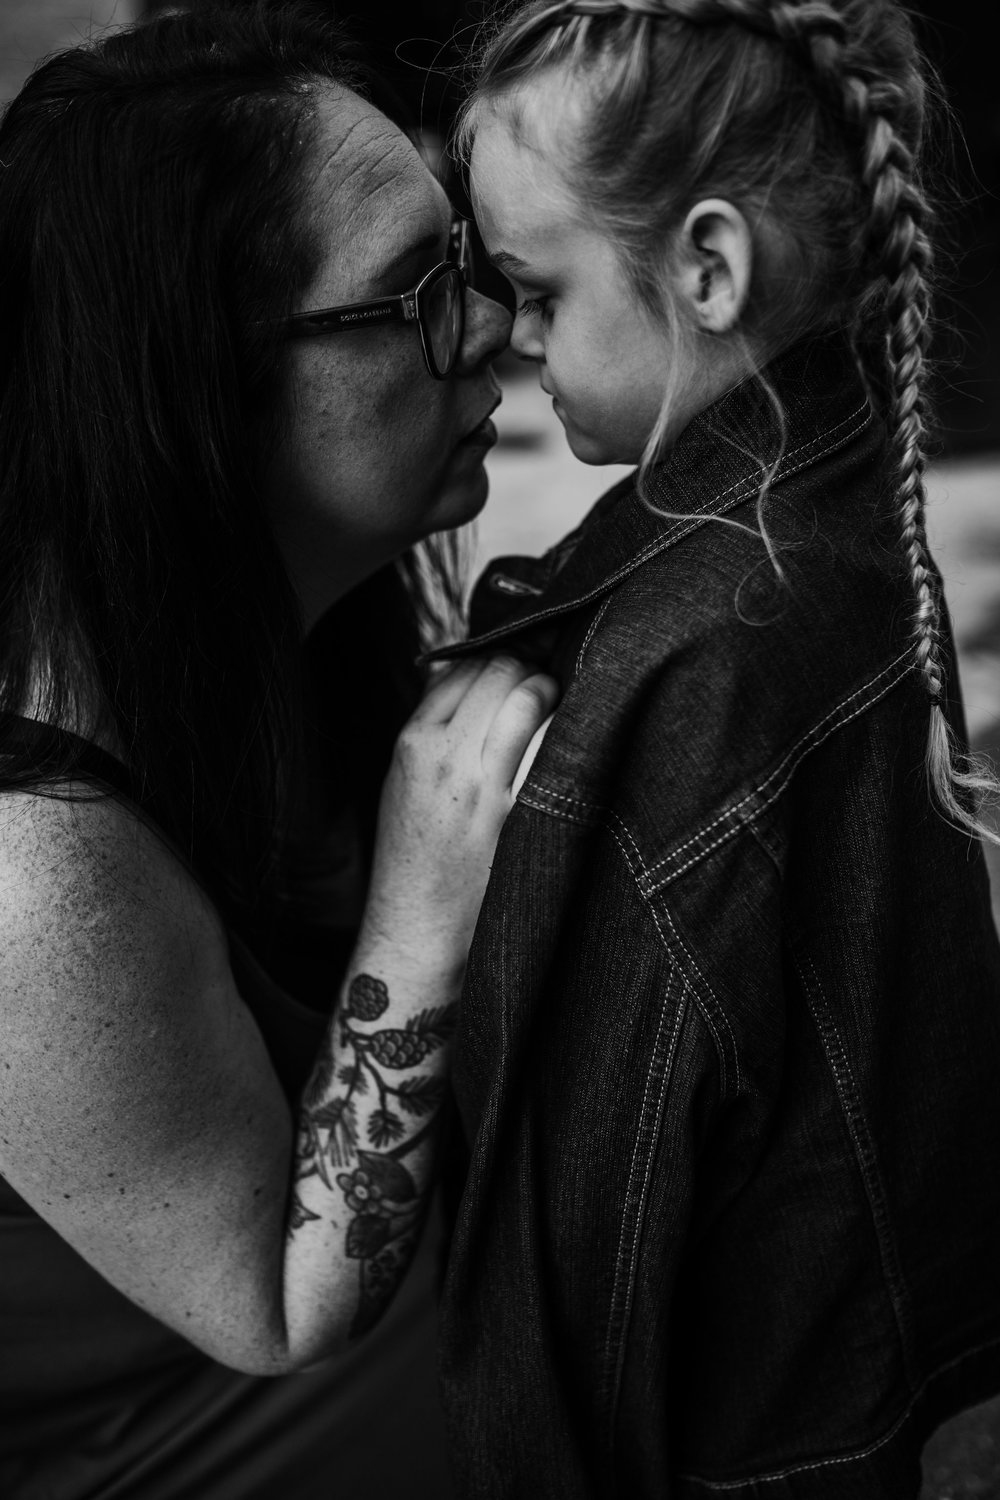 Daughter wears mom's oversized jean jacket as they share a sweet moment